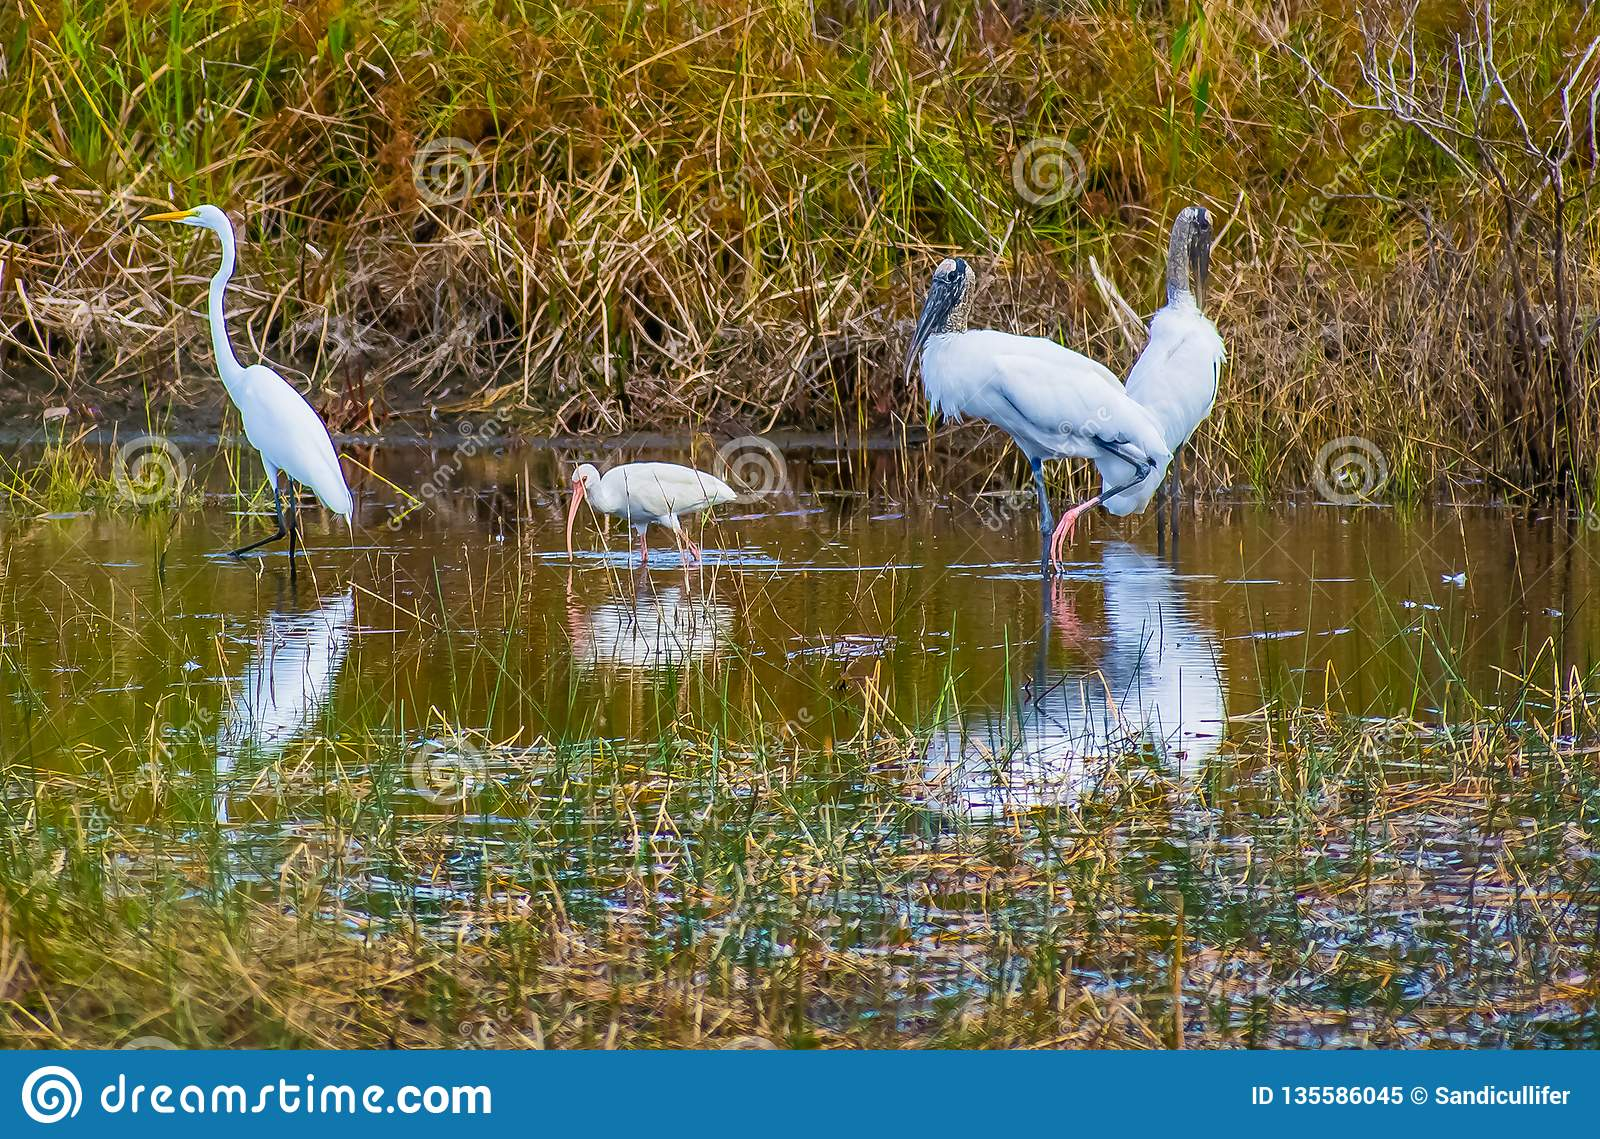 White Avian Wildlife in a Florida Swamp